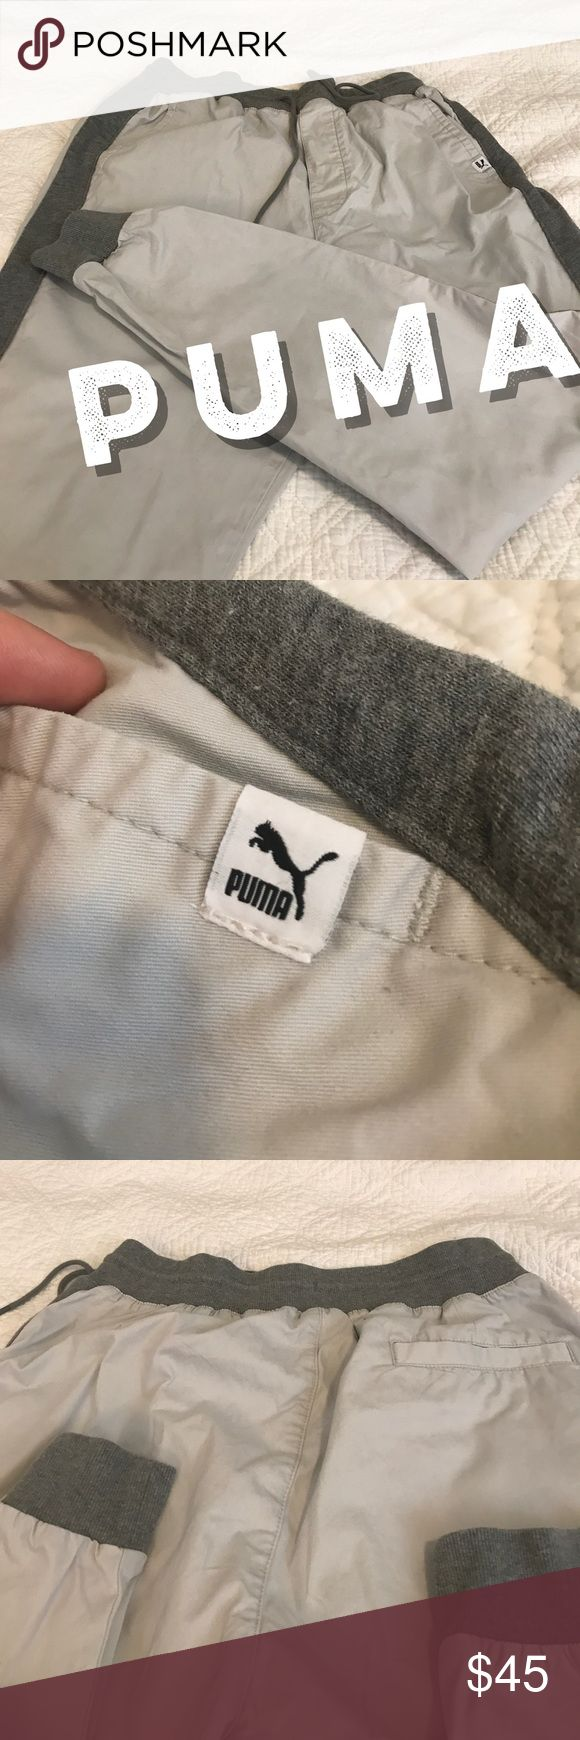 Puma sport lifestyle pants // good condition Puma pants worn a few times, in good condition. Weird mark pictured above. Puma Pants Sweatpants & Joggers